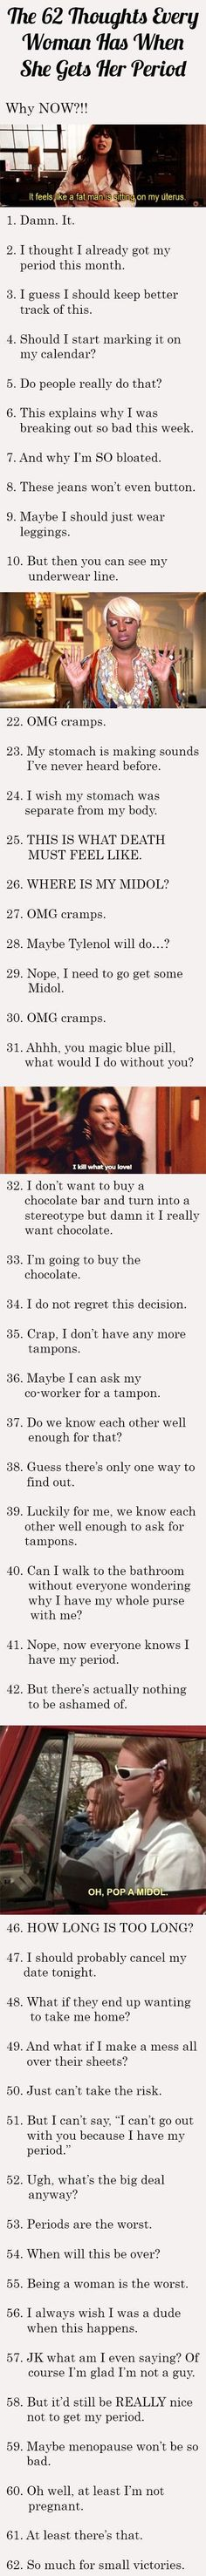 62 Thoughts Every Woman Has When She Gets Her Period Pictures, Photos, and Images for Facebook, Tumblr, Pinterest, and Twitter